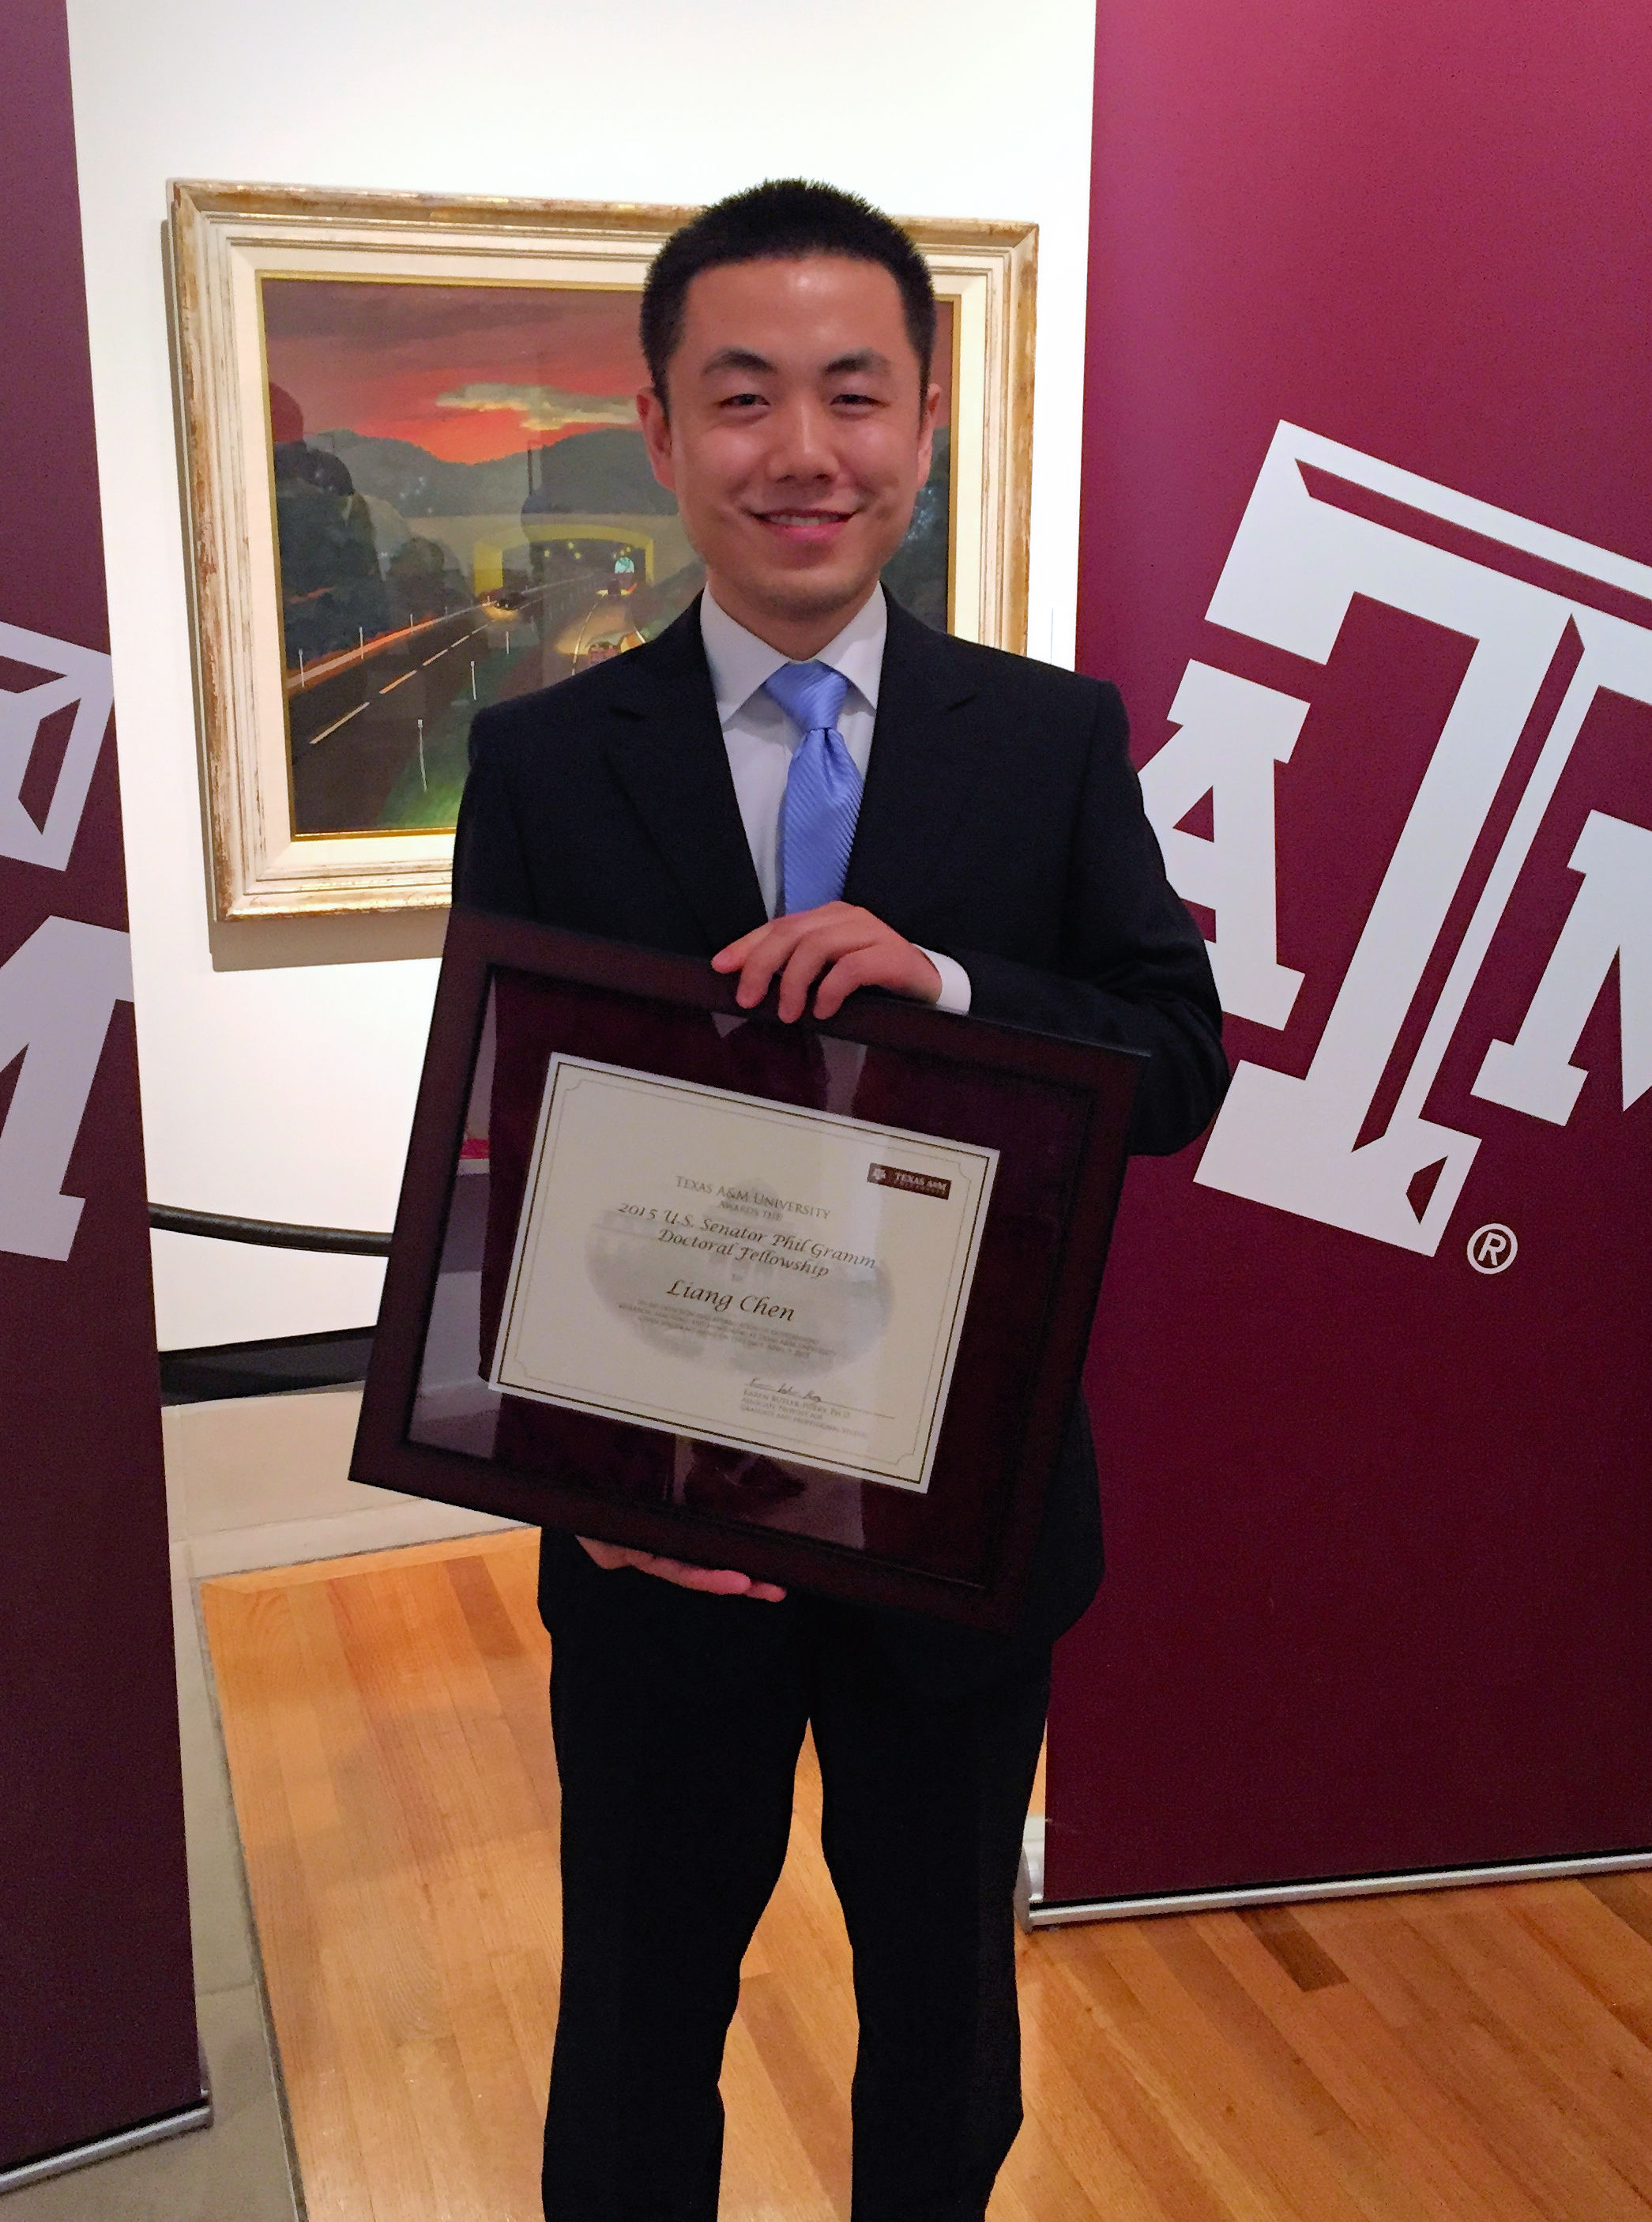 Liang Chen Wins Paper of the Year Award